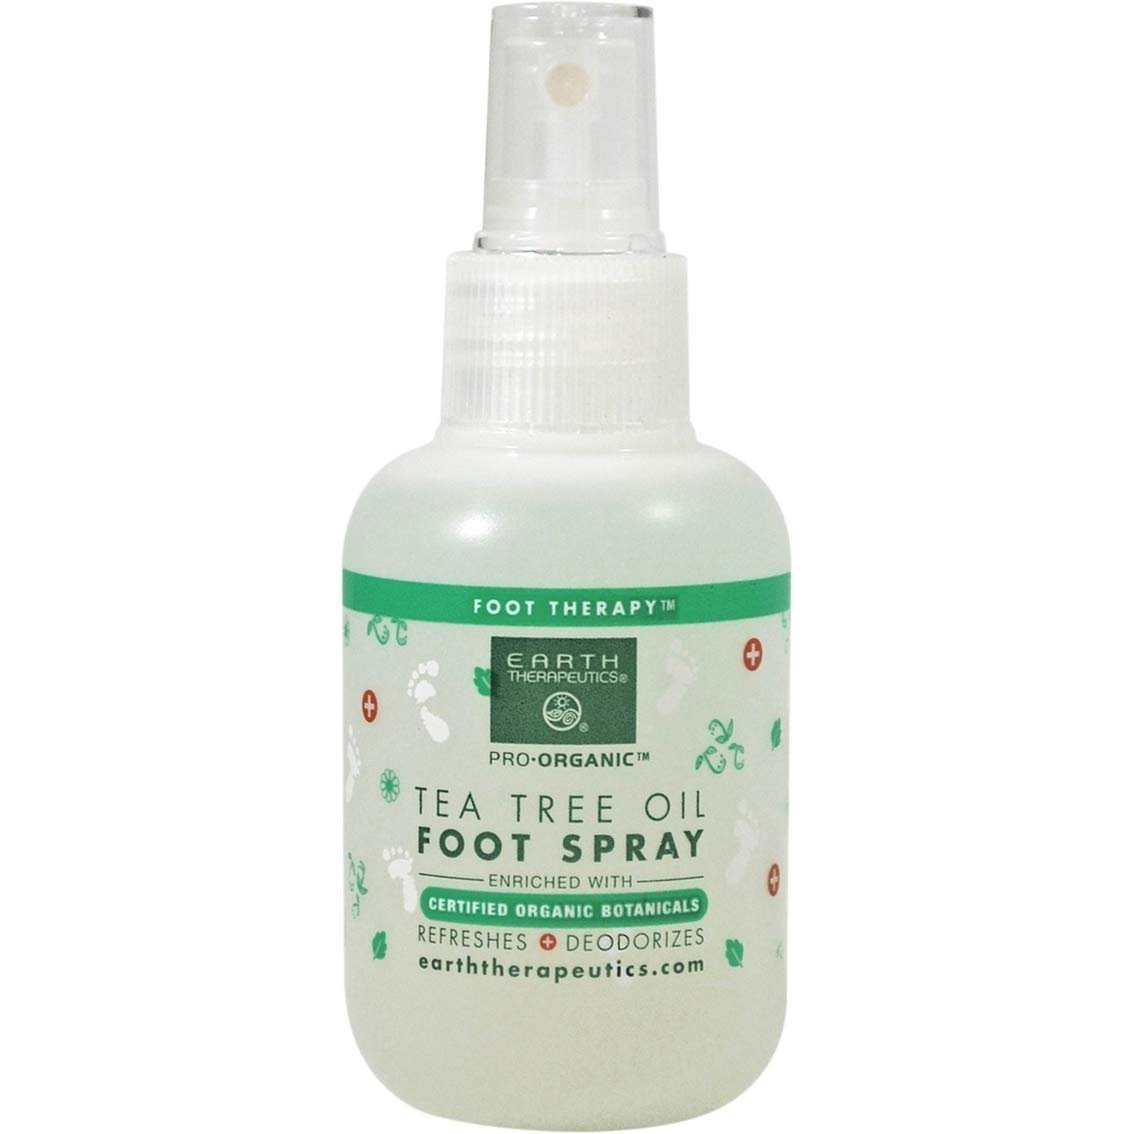 Foot Spray- Antiseptic With Tea Tree Oil 4 Oz